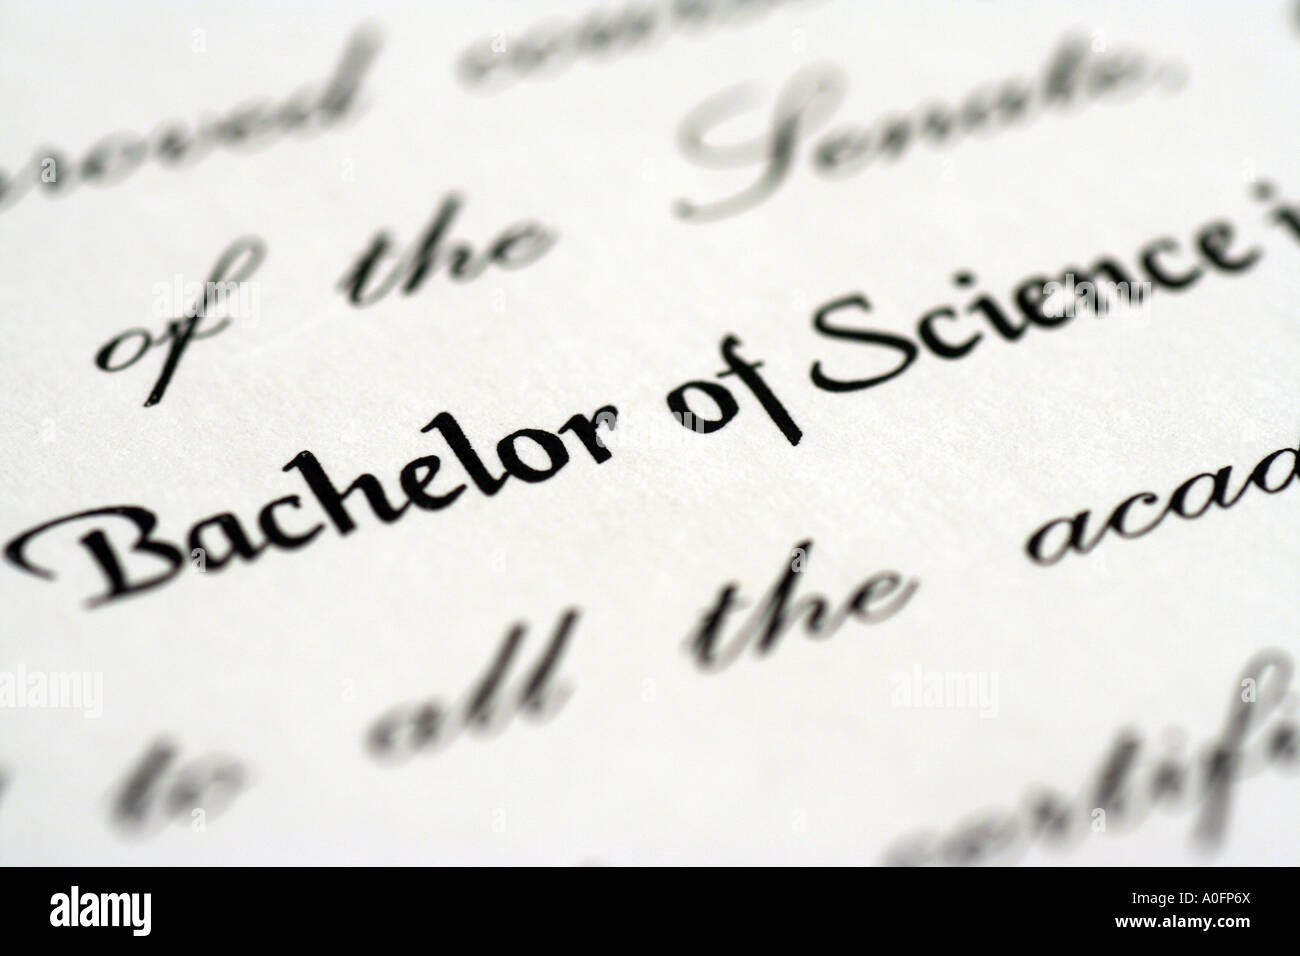 Science bachelor rjd2 ghostwriter remix free mp3 download